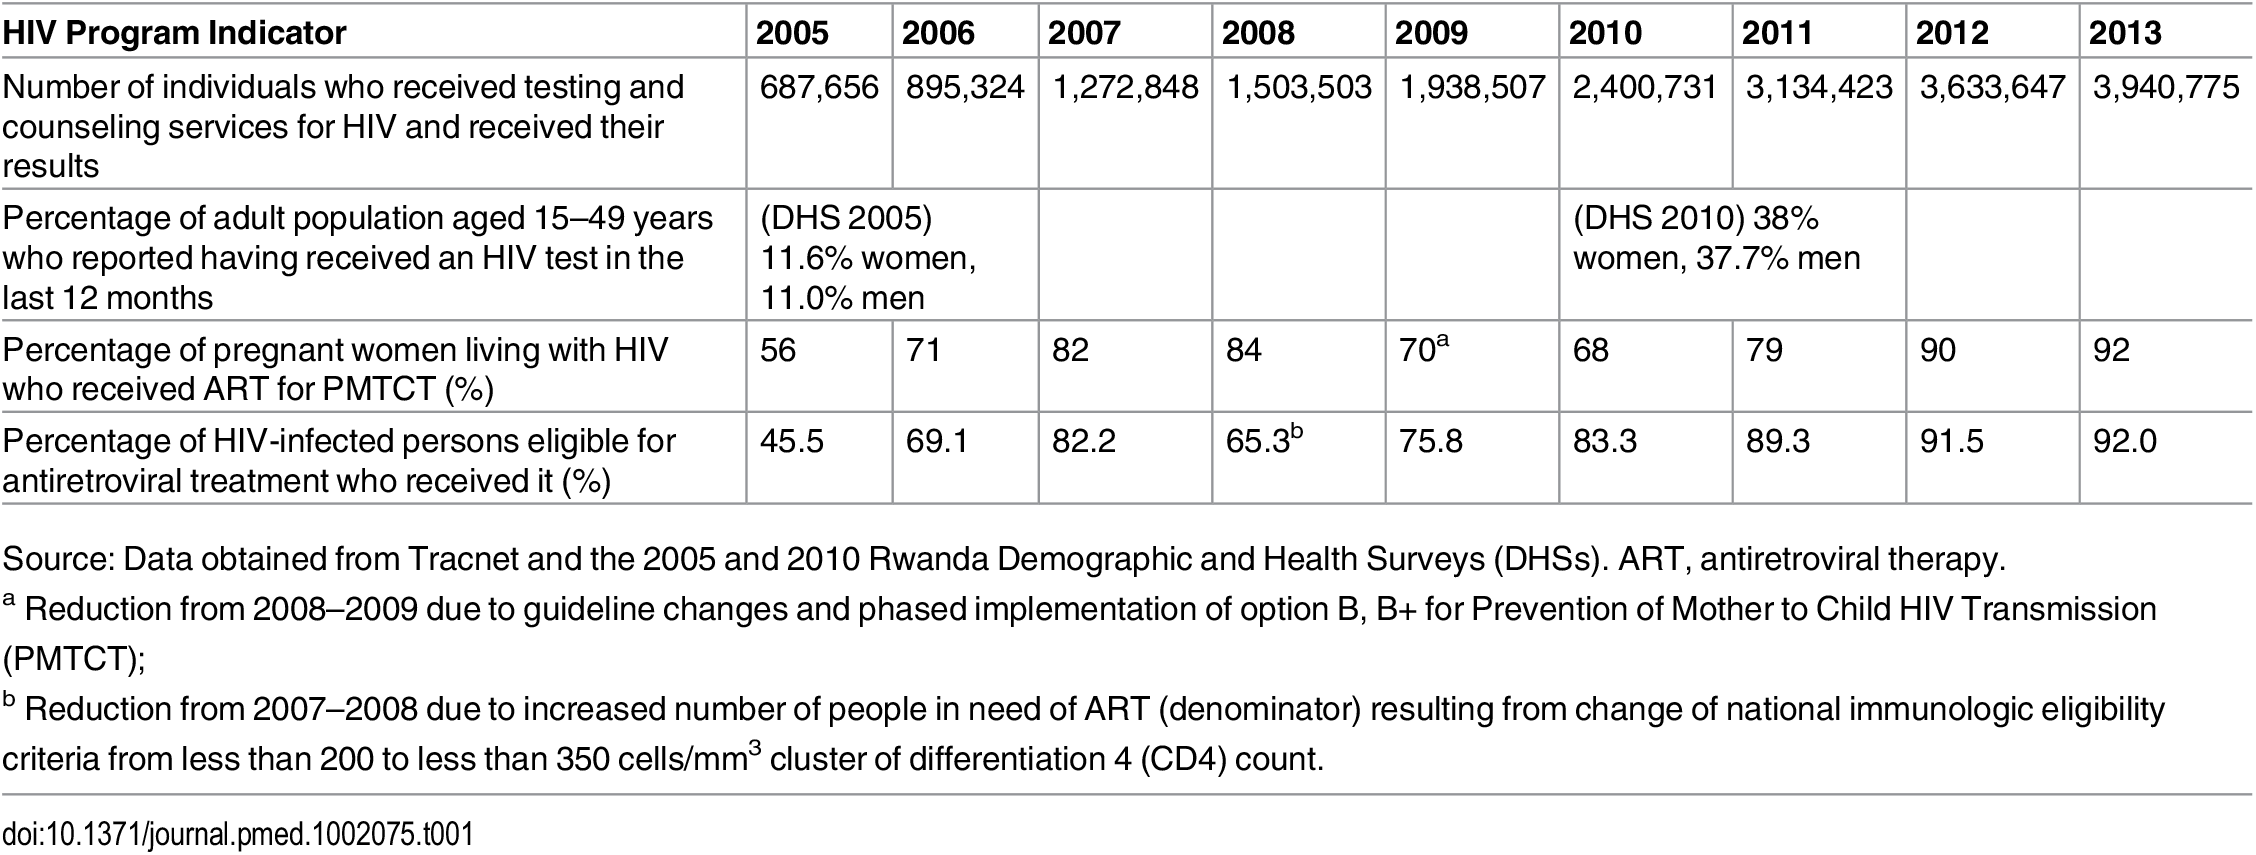 Key HIV Program Indicators in Rwanda, 2005–2013.